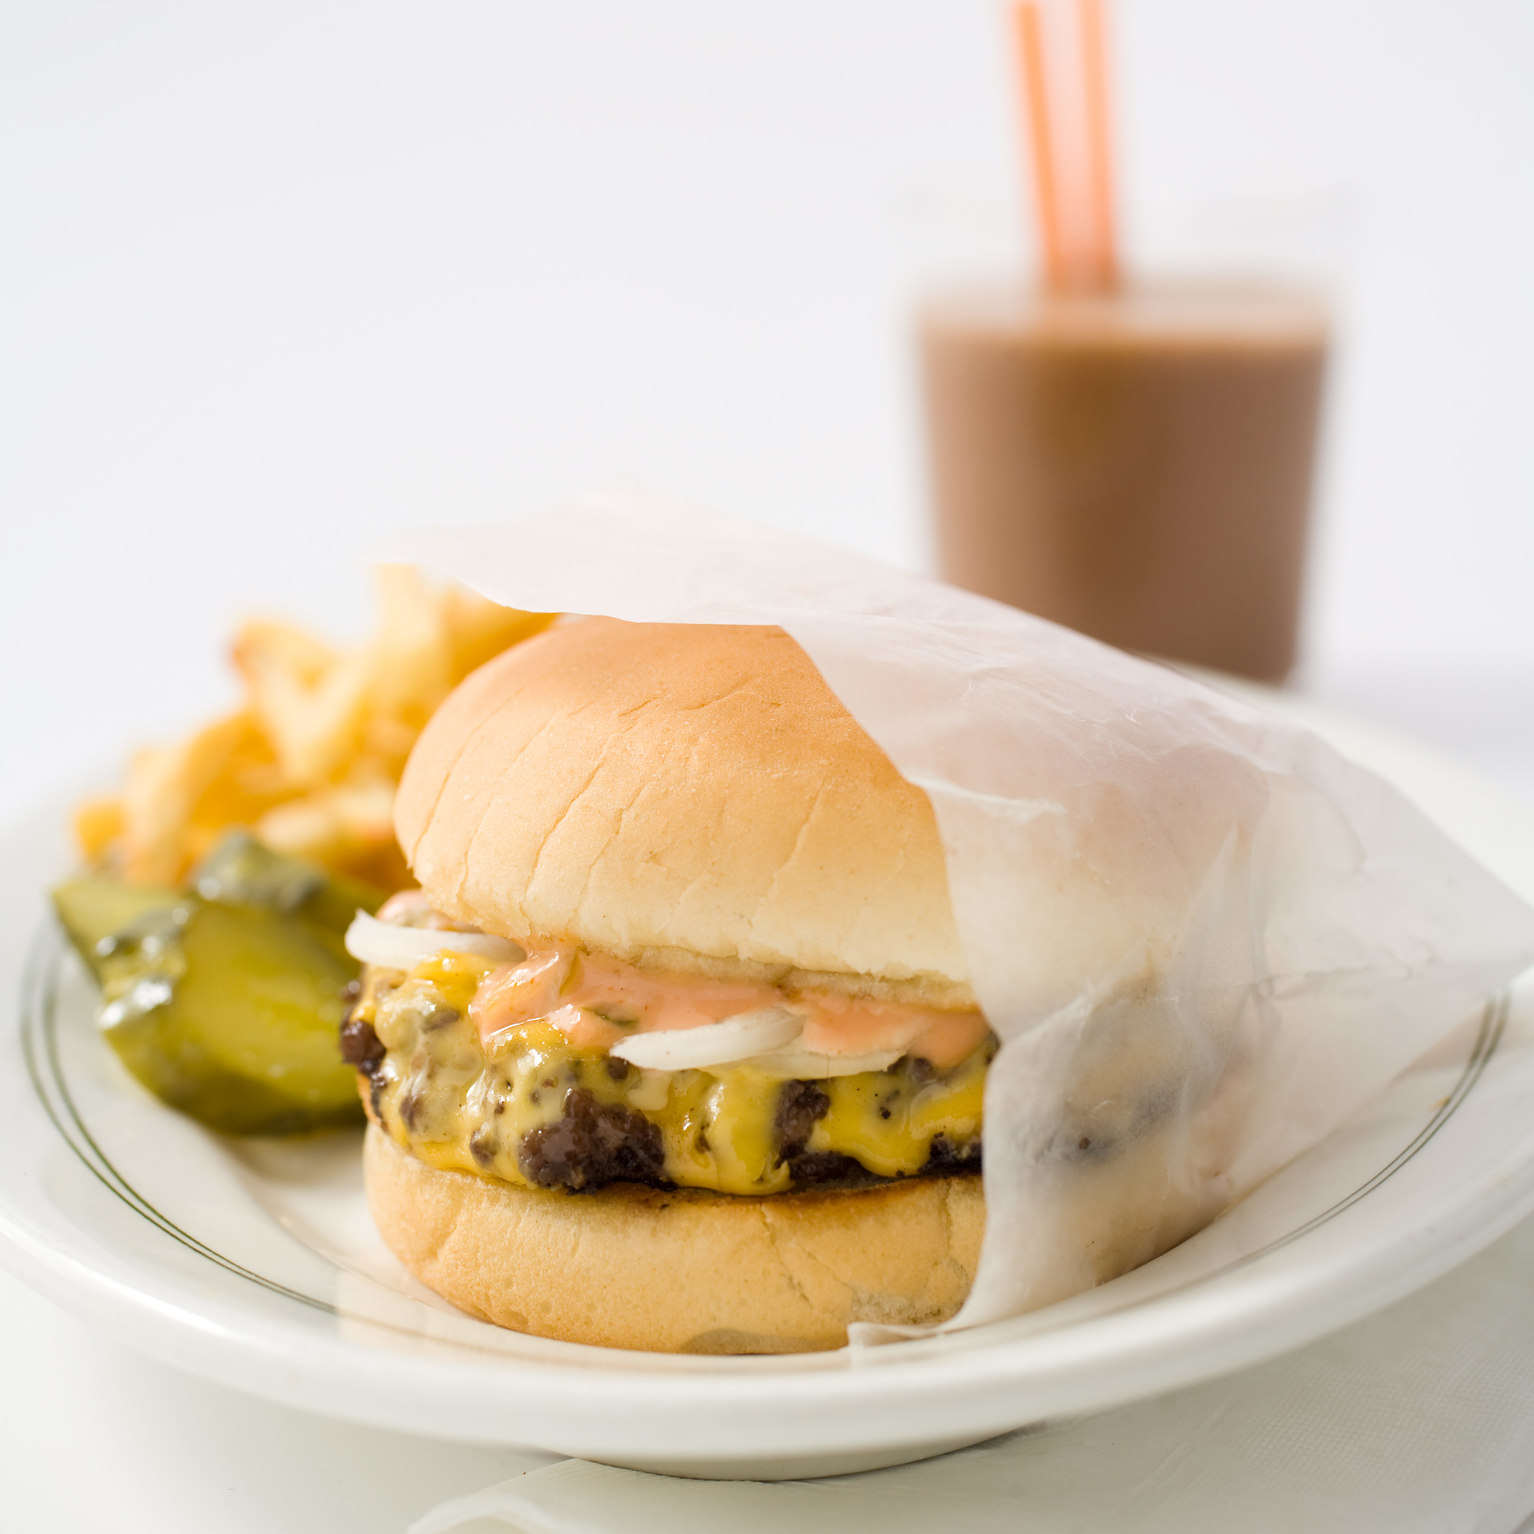 Best Old-Fashioned Burgers